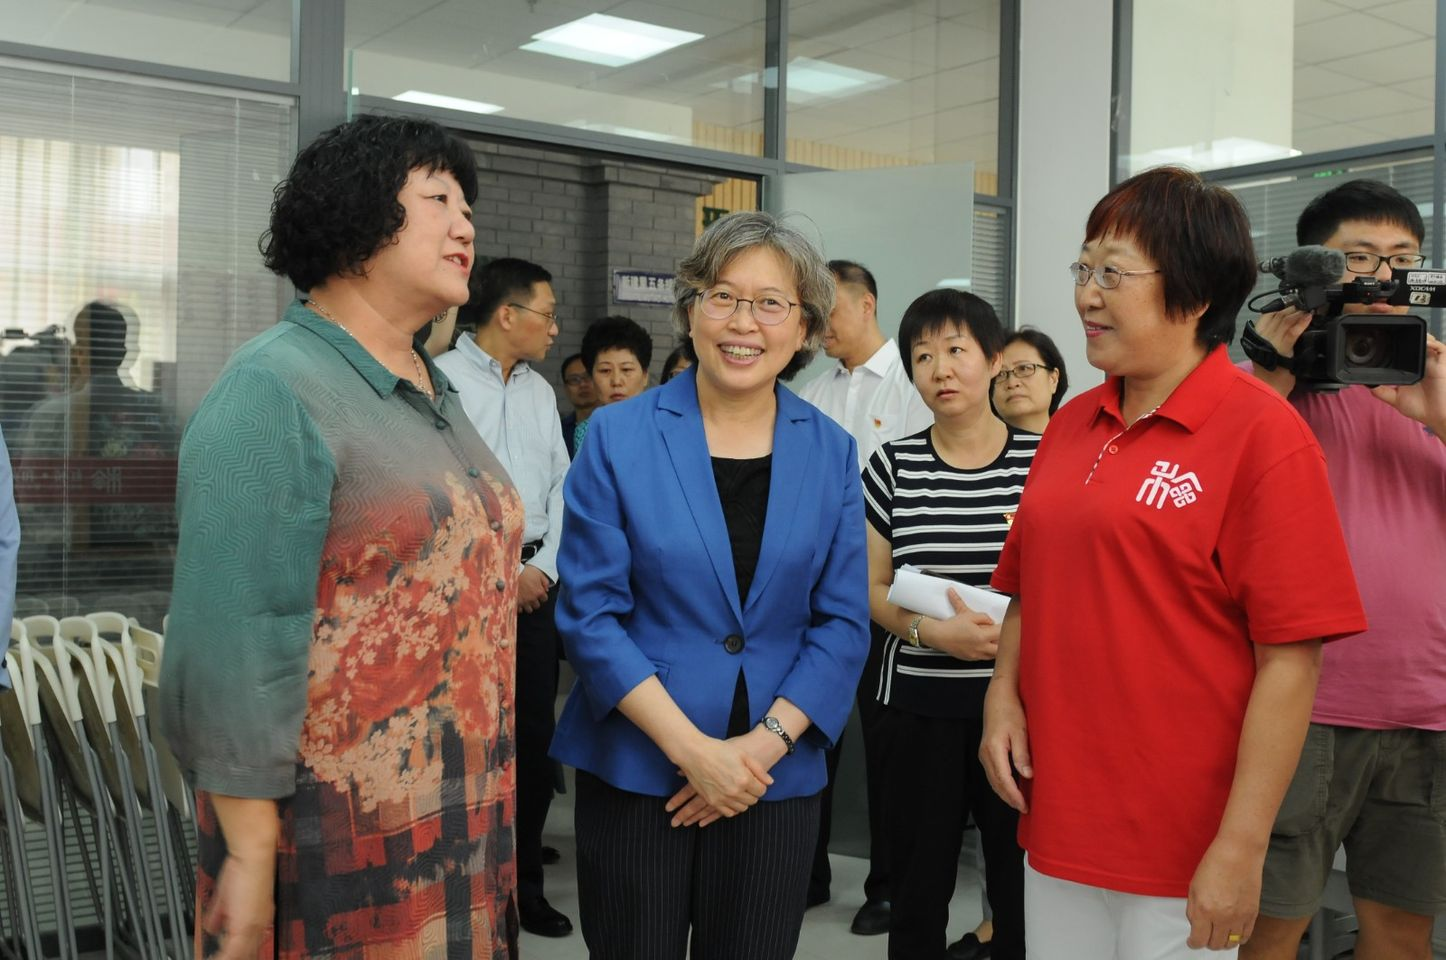 ACWF Senior Official Inspects Work, Reform of Women